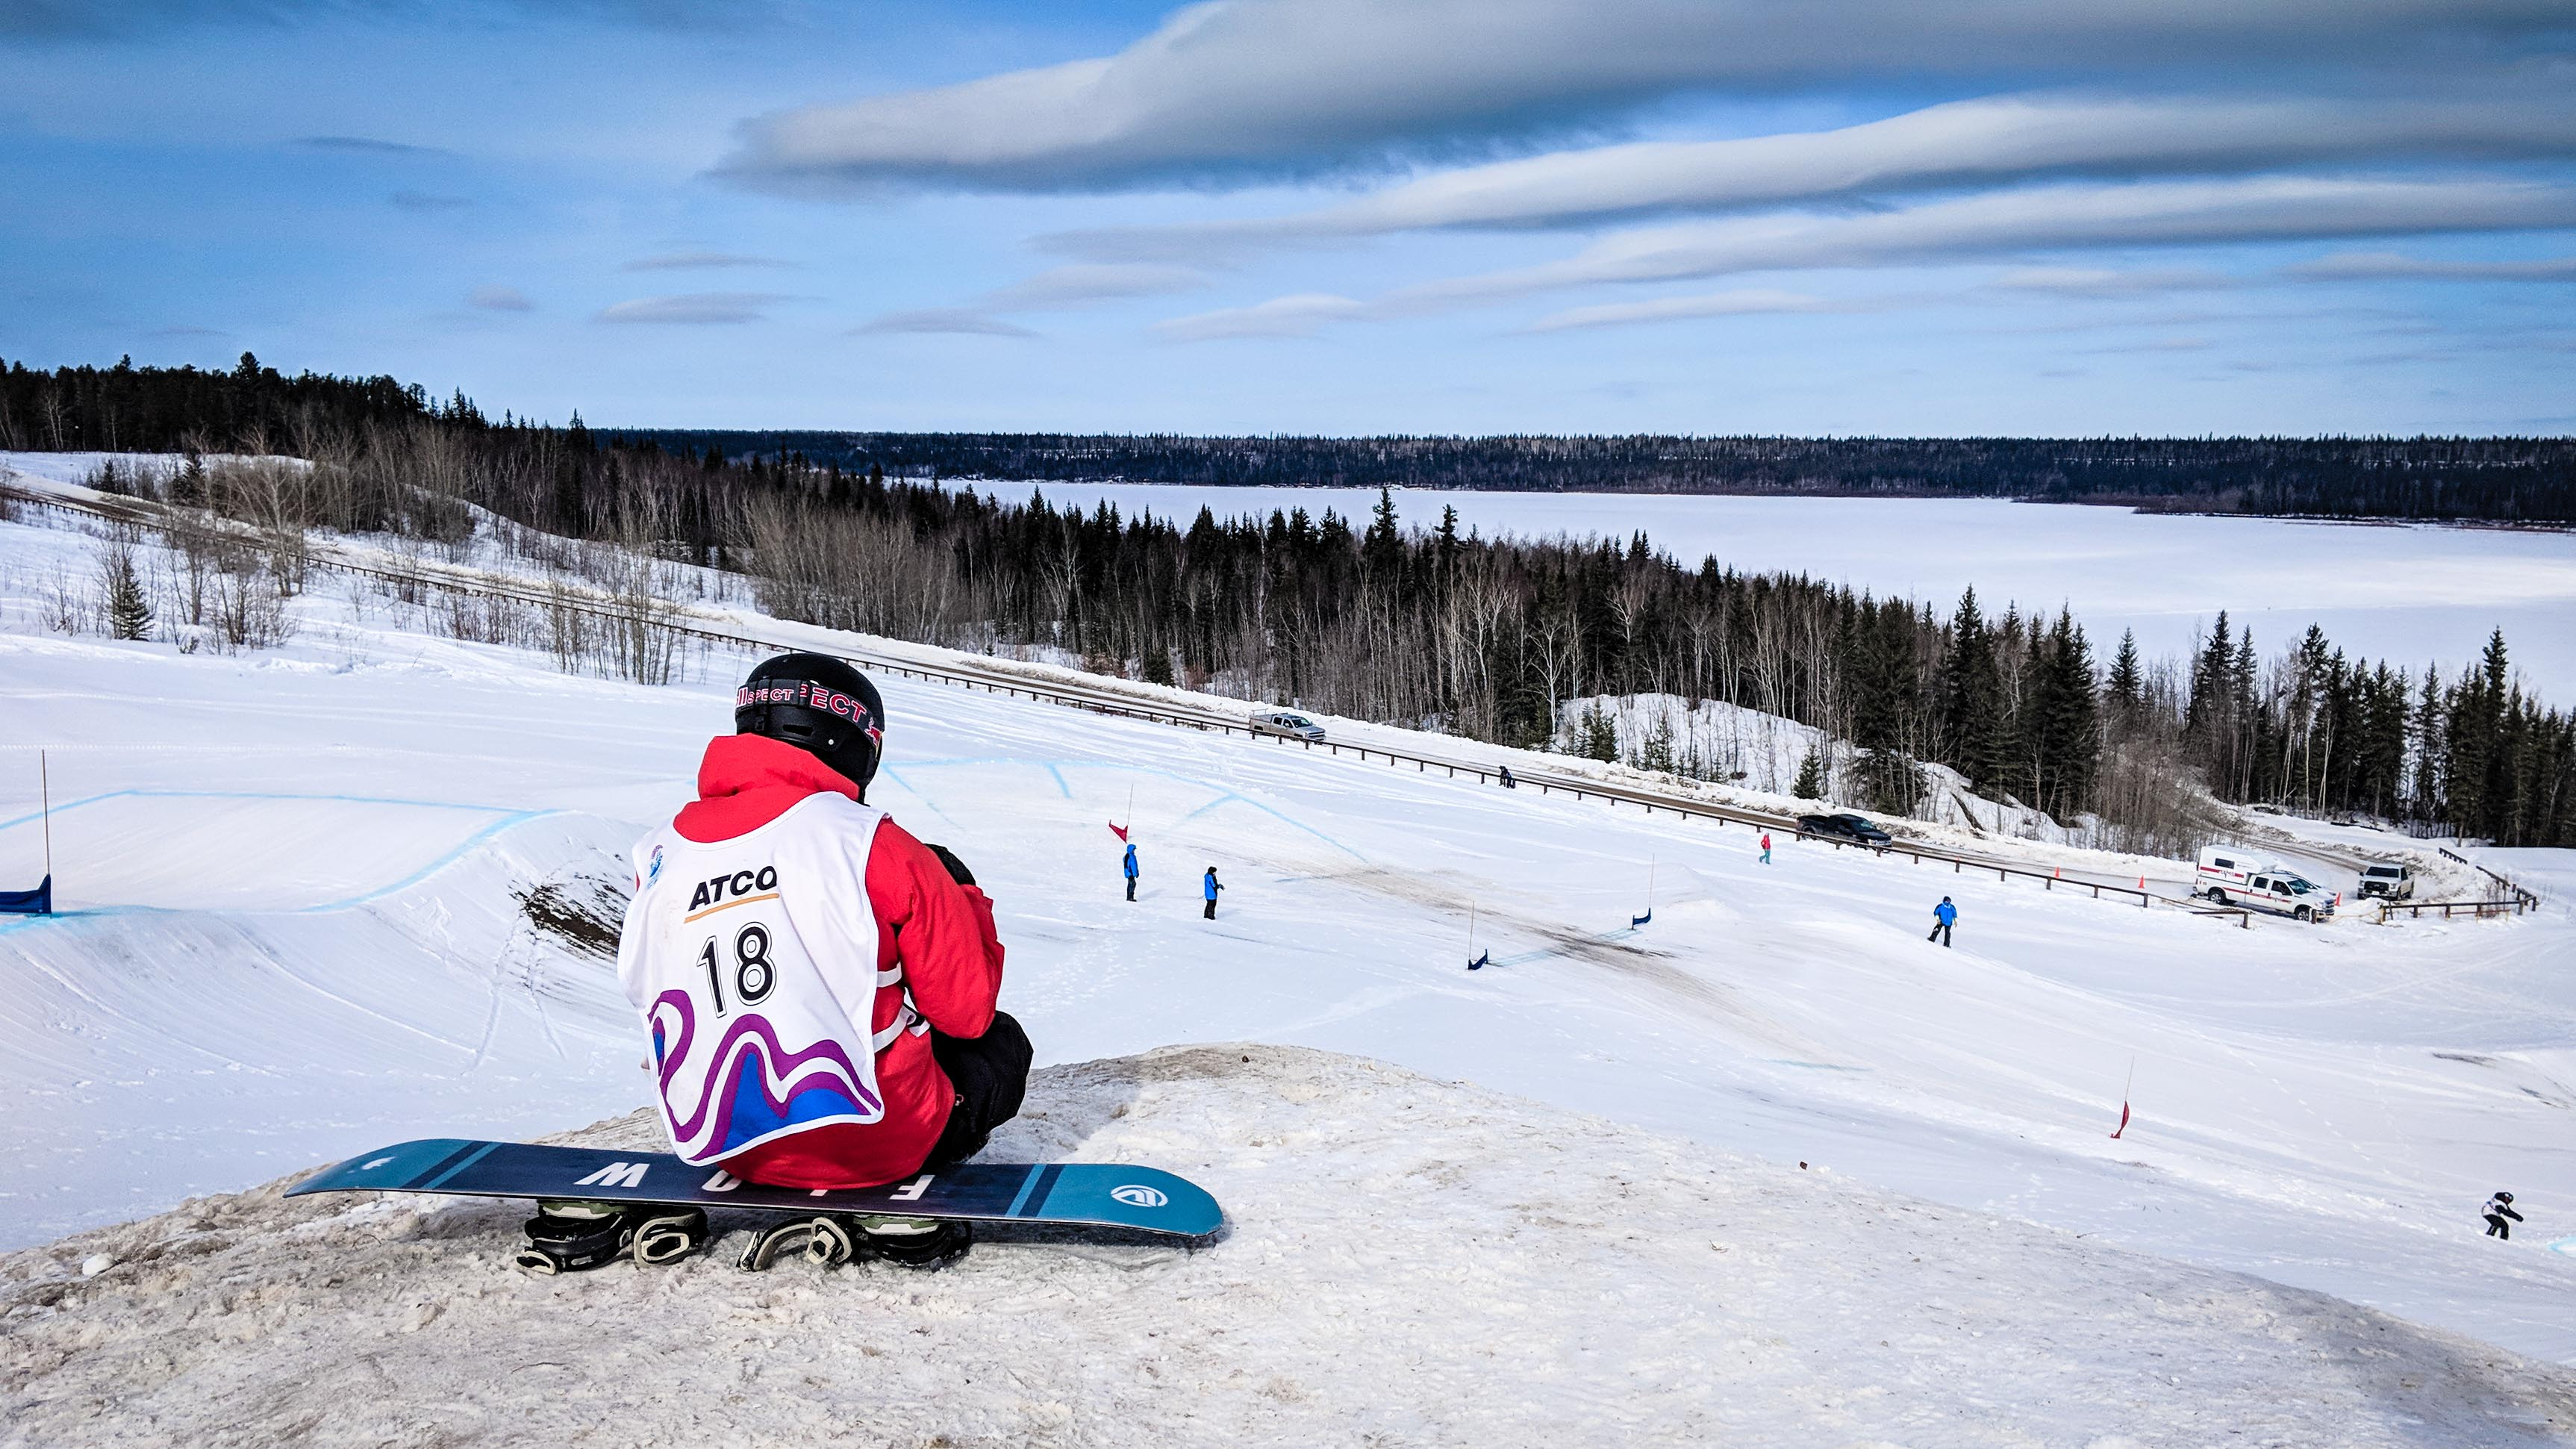 An athlete looks on at the 2018 Arctic Winter Games snowboarding venue in Fort Smith